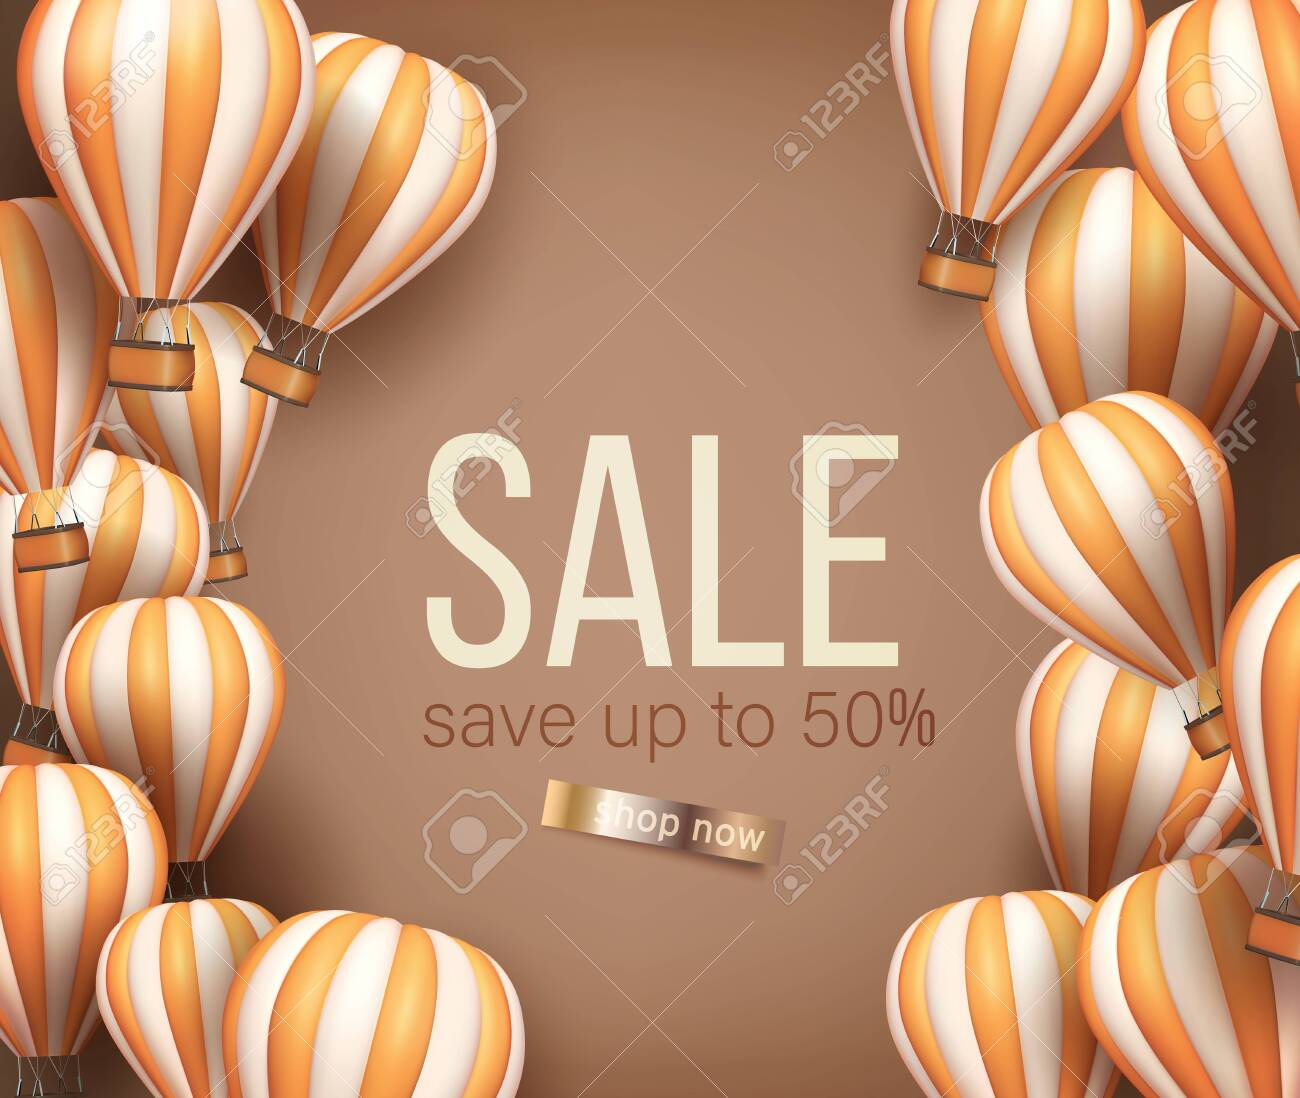 3d Realistic hot air balloon orange and beige color flyer or banner template for sale. Vector illustration - 141022828